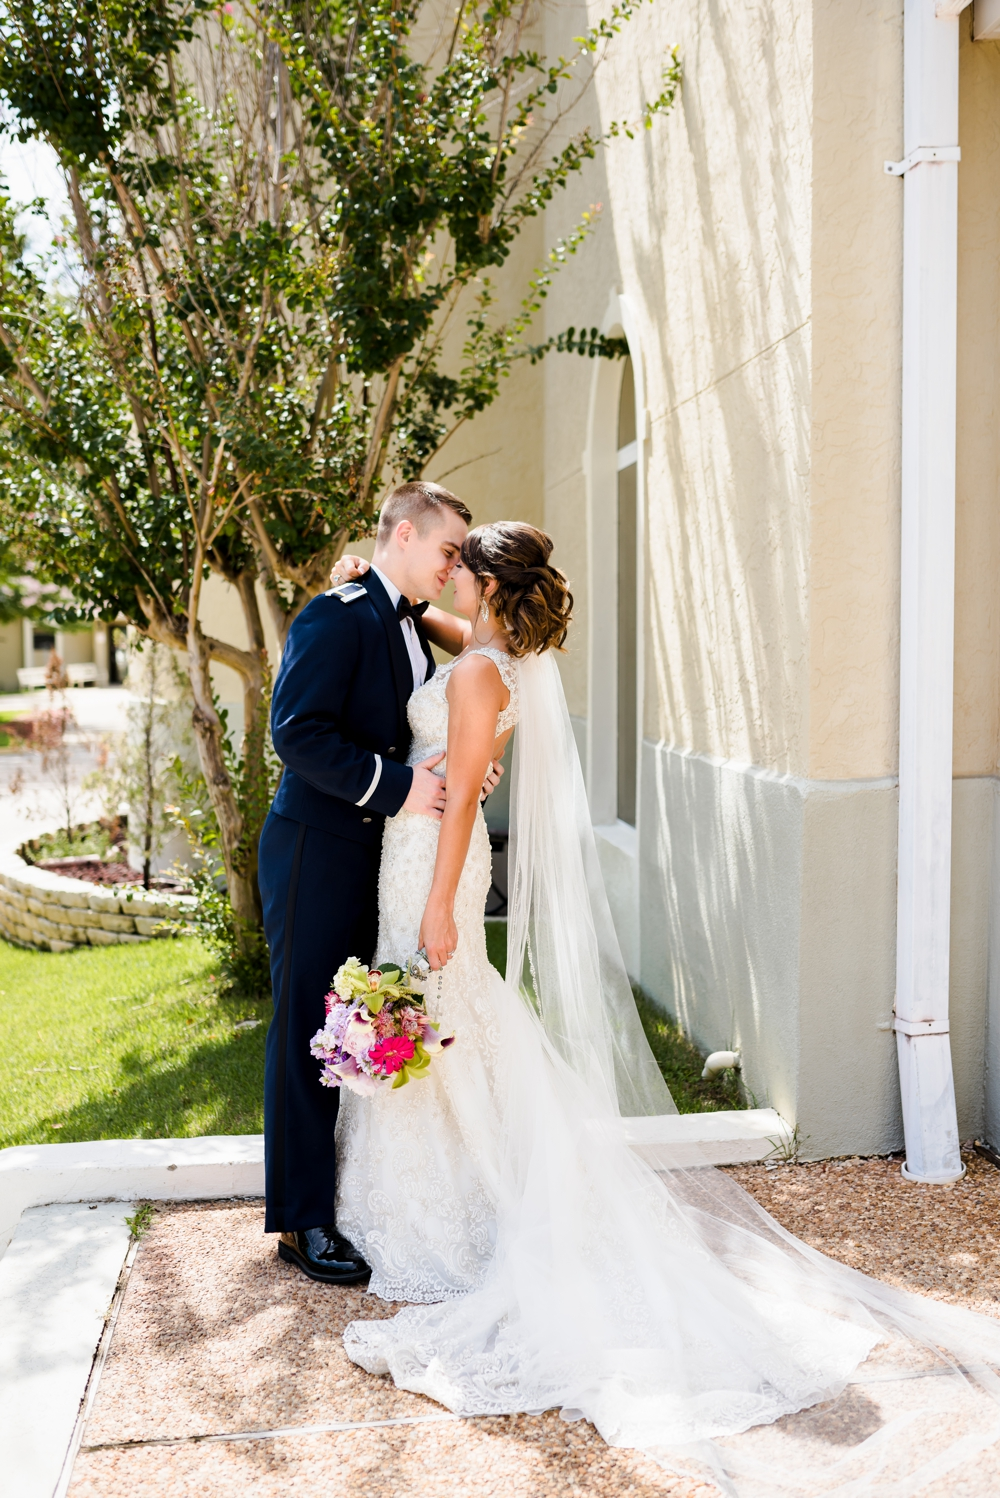 wallin-florida-wedding-photographer-kiersten-grant-51.jpg